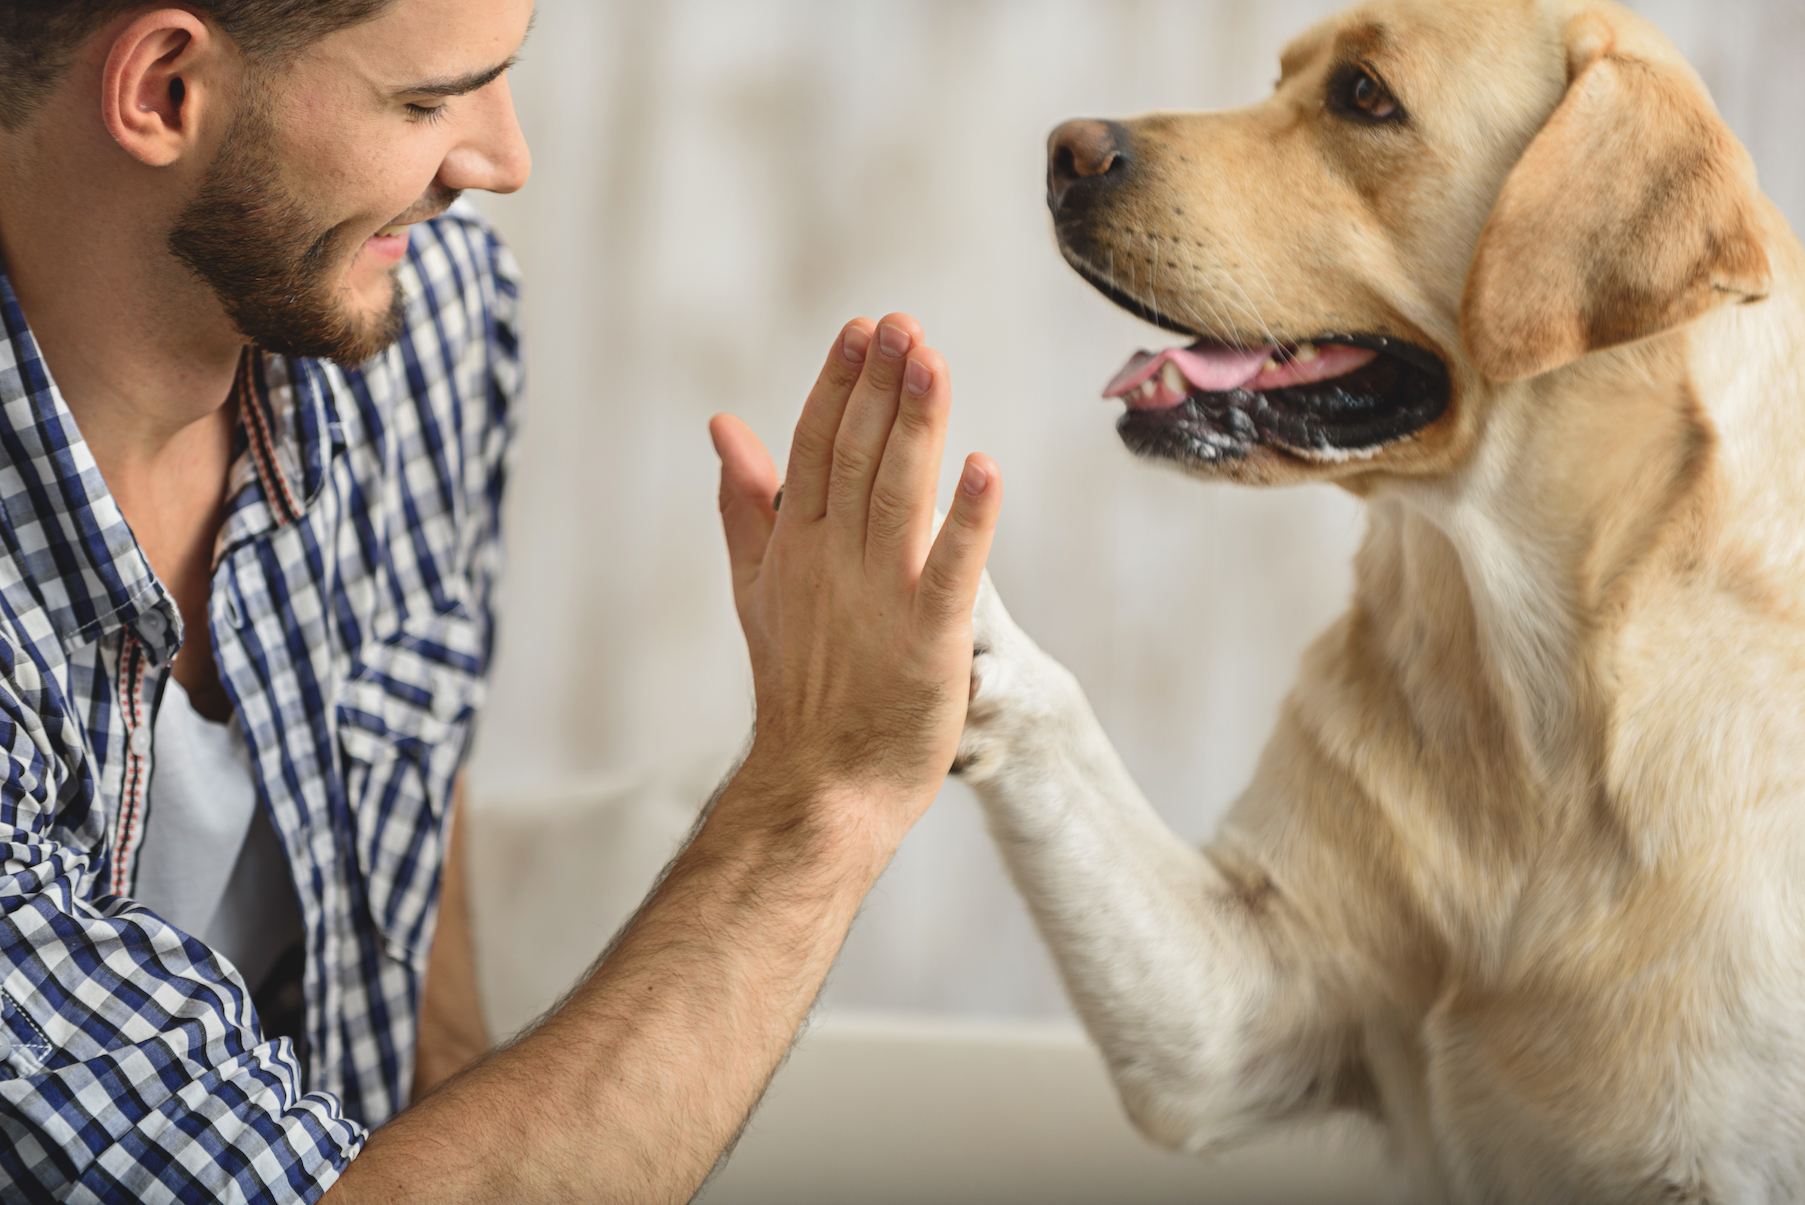 New research has found that dogs also become much more interested in looking at happy human faces with a smile, as opposed to angry ones.